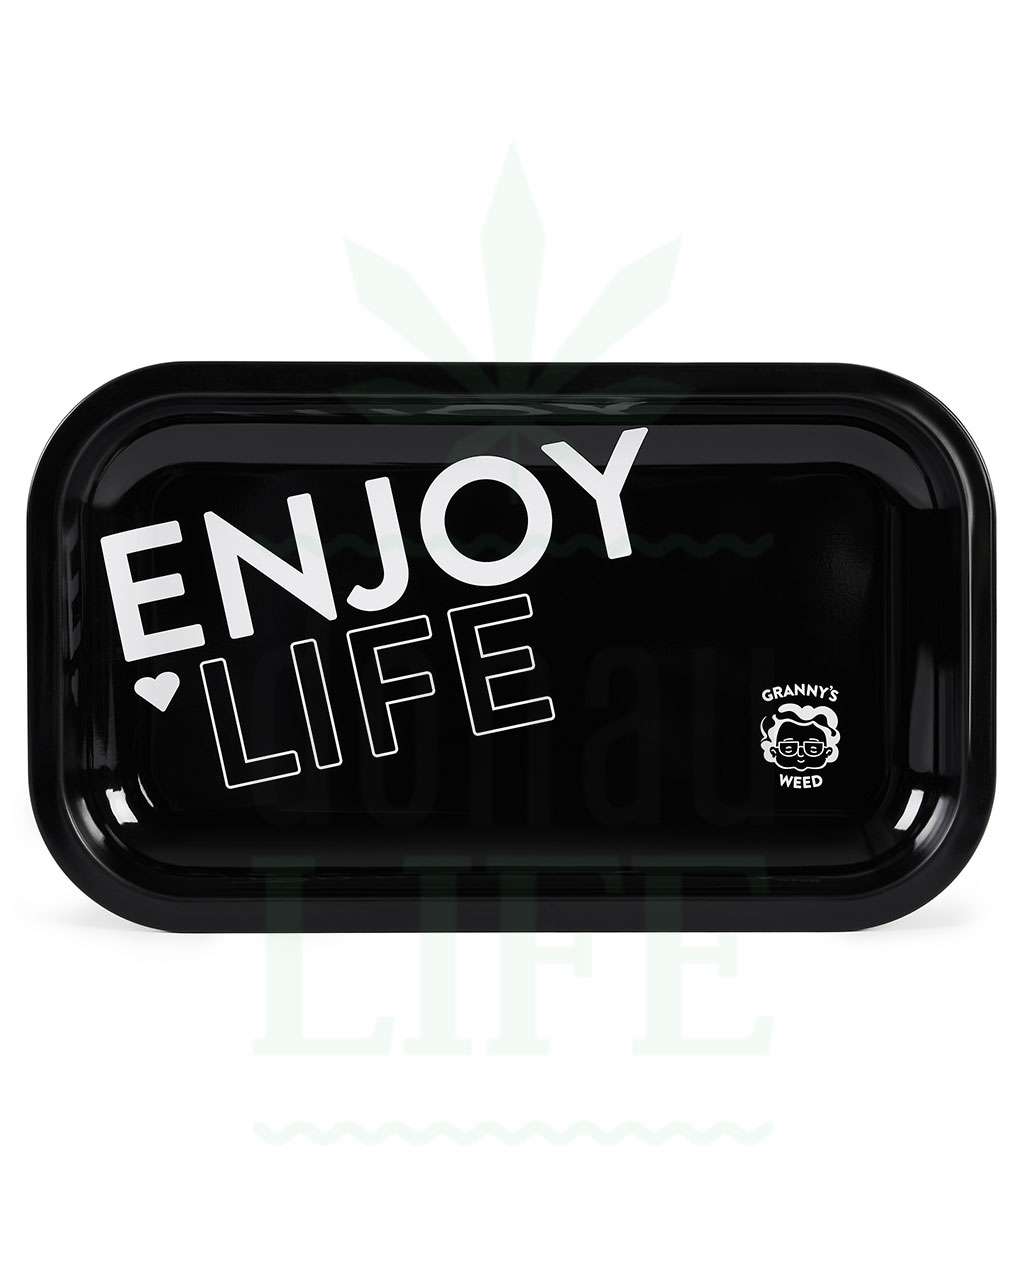 aus Metall GRANNY´S WEED Rolling Tray | 'Enjoy Life'